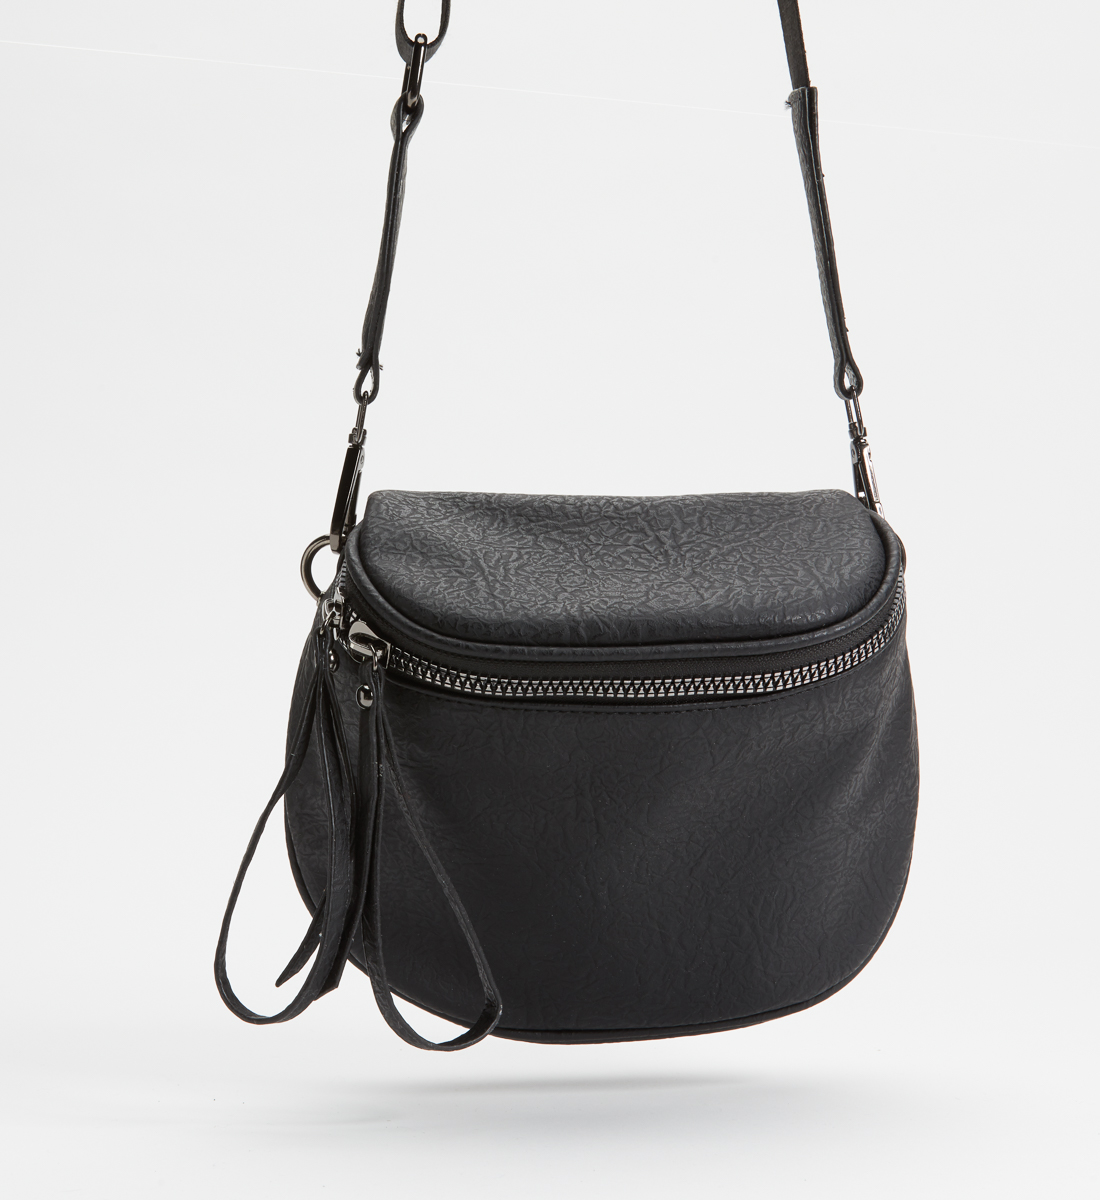 Zip Saddle Bag,Black Side